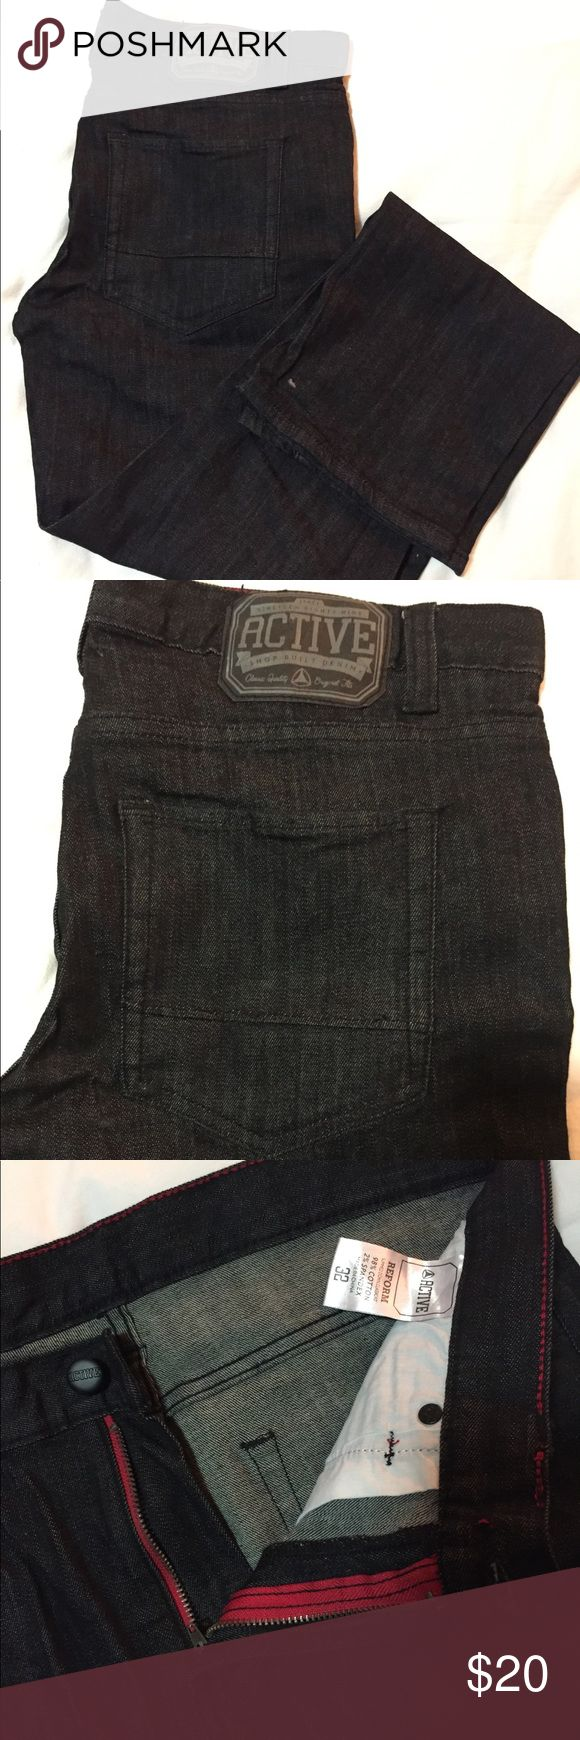 "Active Ride Shop Black denim jeans 32 x 30"" Active Ride Shop Black denim jeans. Skater classic. These are in perfect condition. Worn one time. Great pair of jeans that can be work casually or to a nice dinner. Day to night denim!!  Style: Reform (slimmed down, classic fit) Active Ride Shop Jeans Slim Straight"